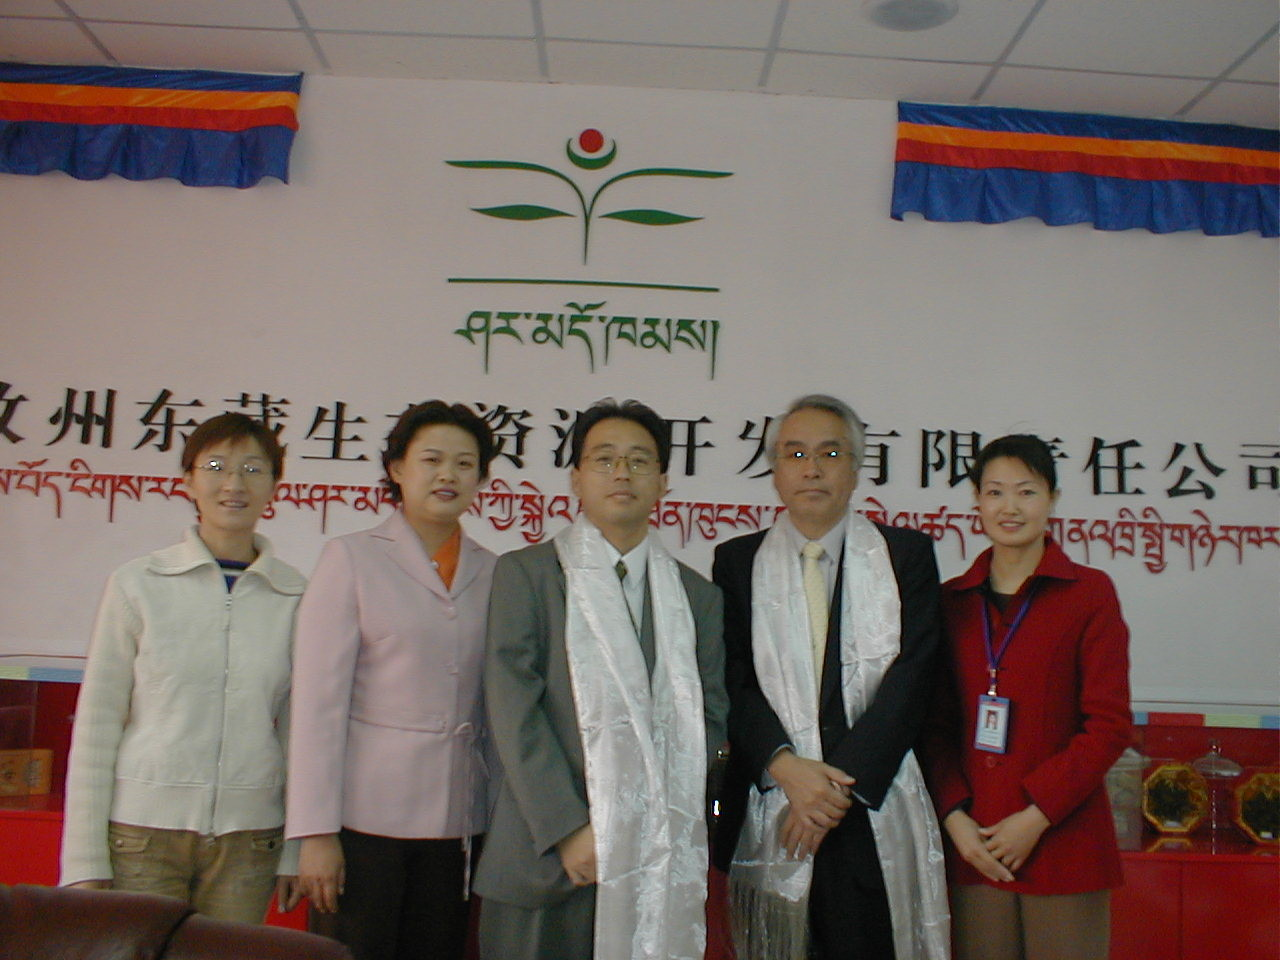 2004, Visit to Sichuan province to to visit a silk textile company